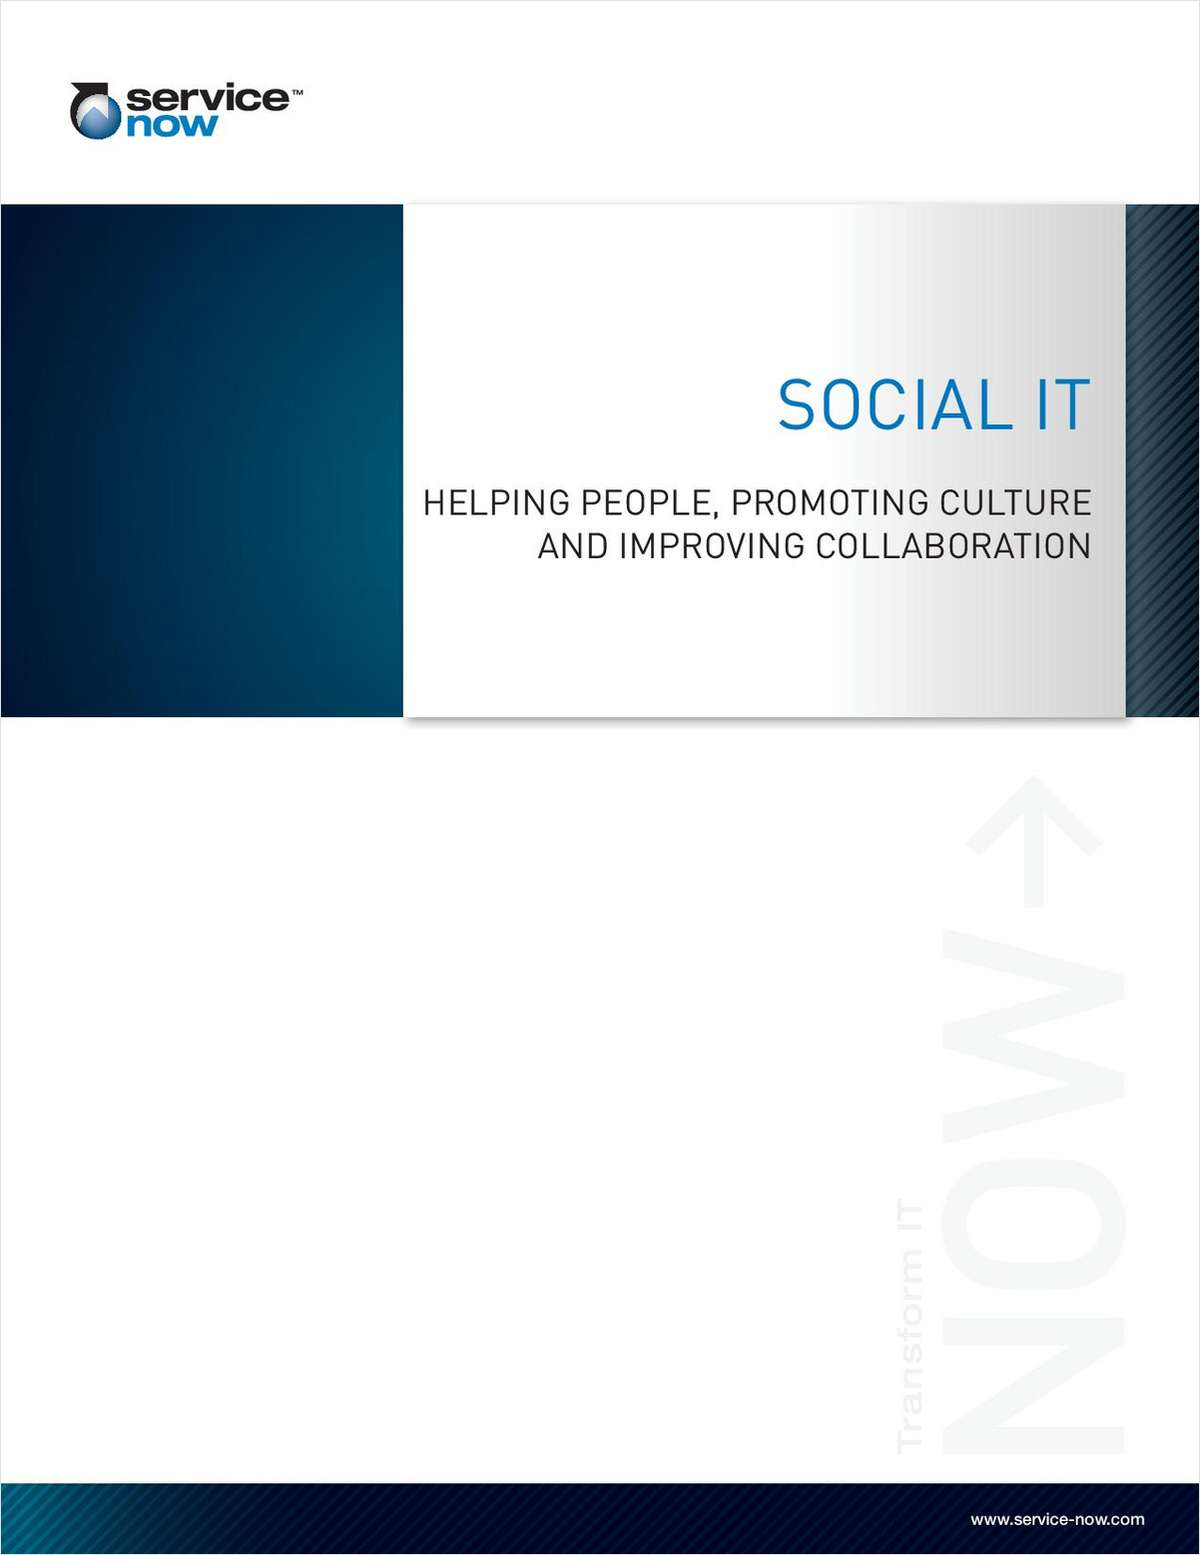 Social IT - Helping People, Promoting Culture and Improving Collaboration